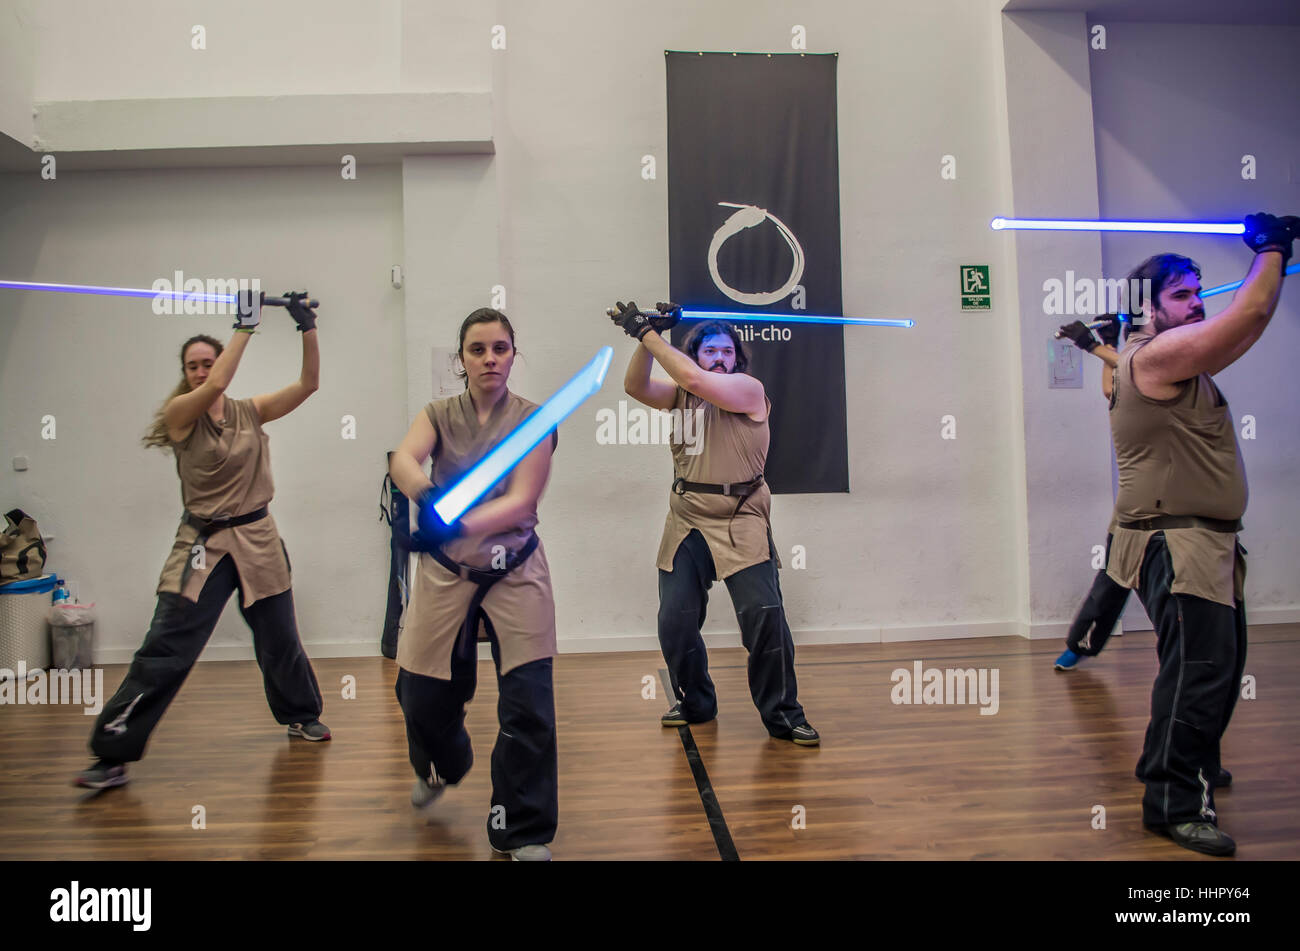 Madrid, Spain. 19th January, 2017. A lightsaber class based on the 'Star Wars' movie franchise takes place - Stock Image